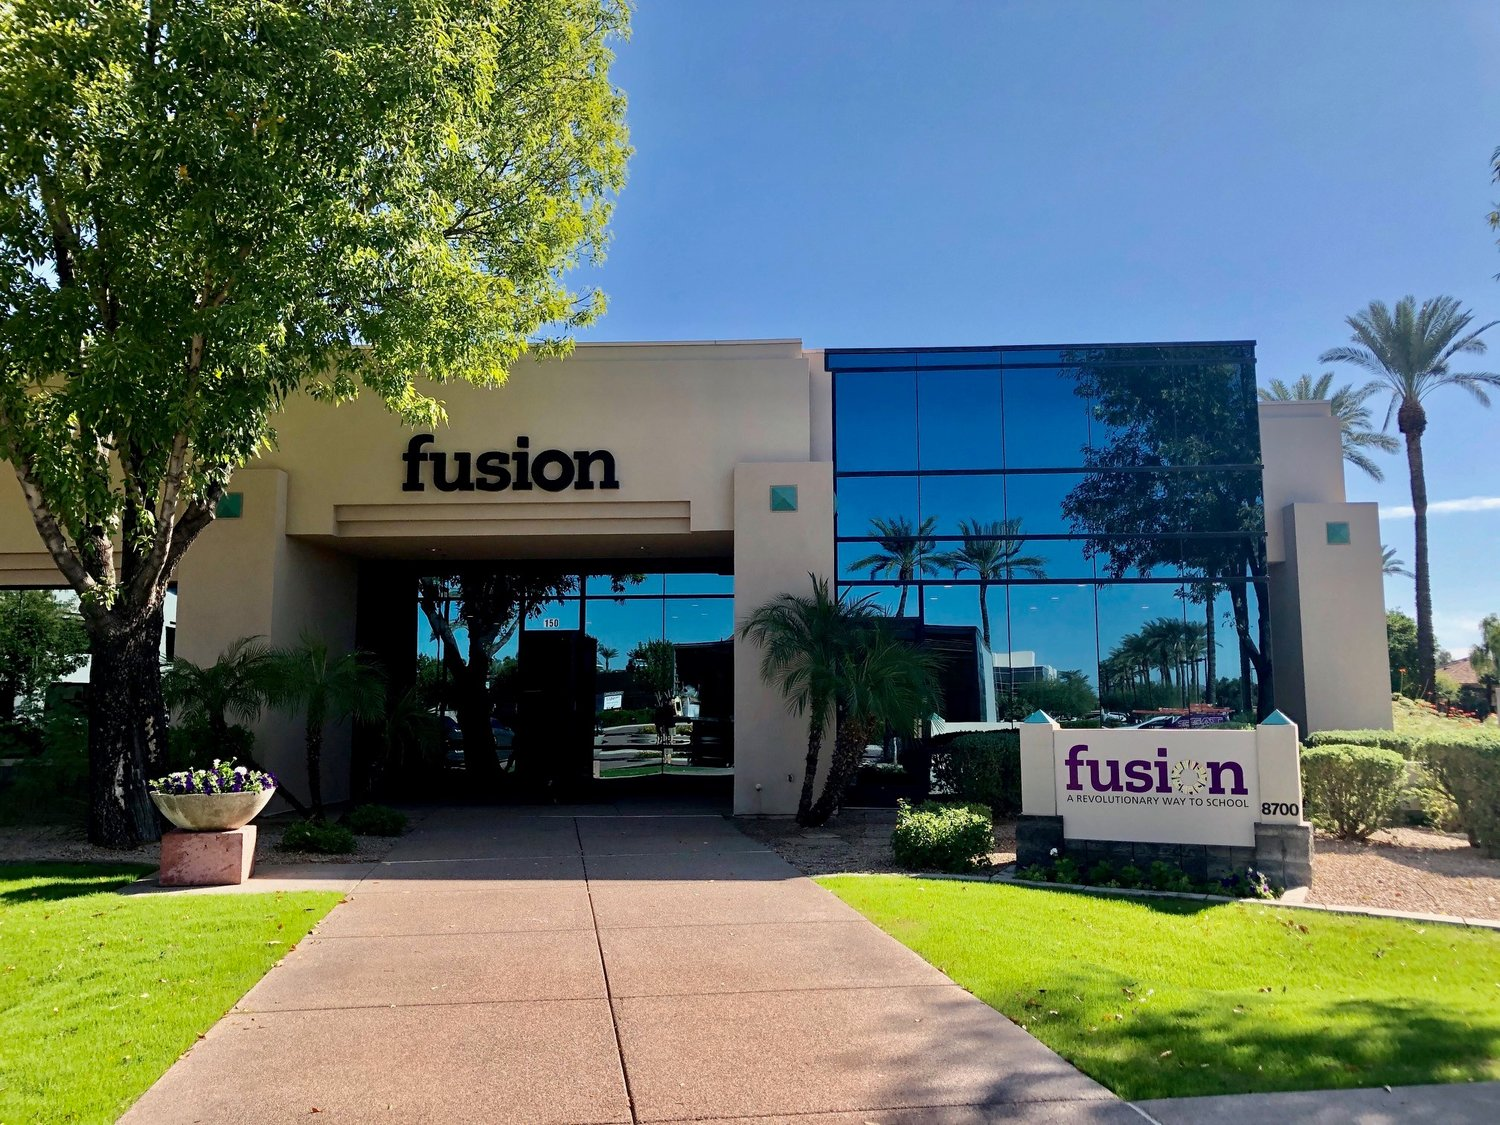 Fusion Academy, a one-on-one private school, will open a campus in Scottsdale at 8700 Gainey Center Drive.